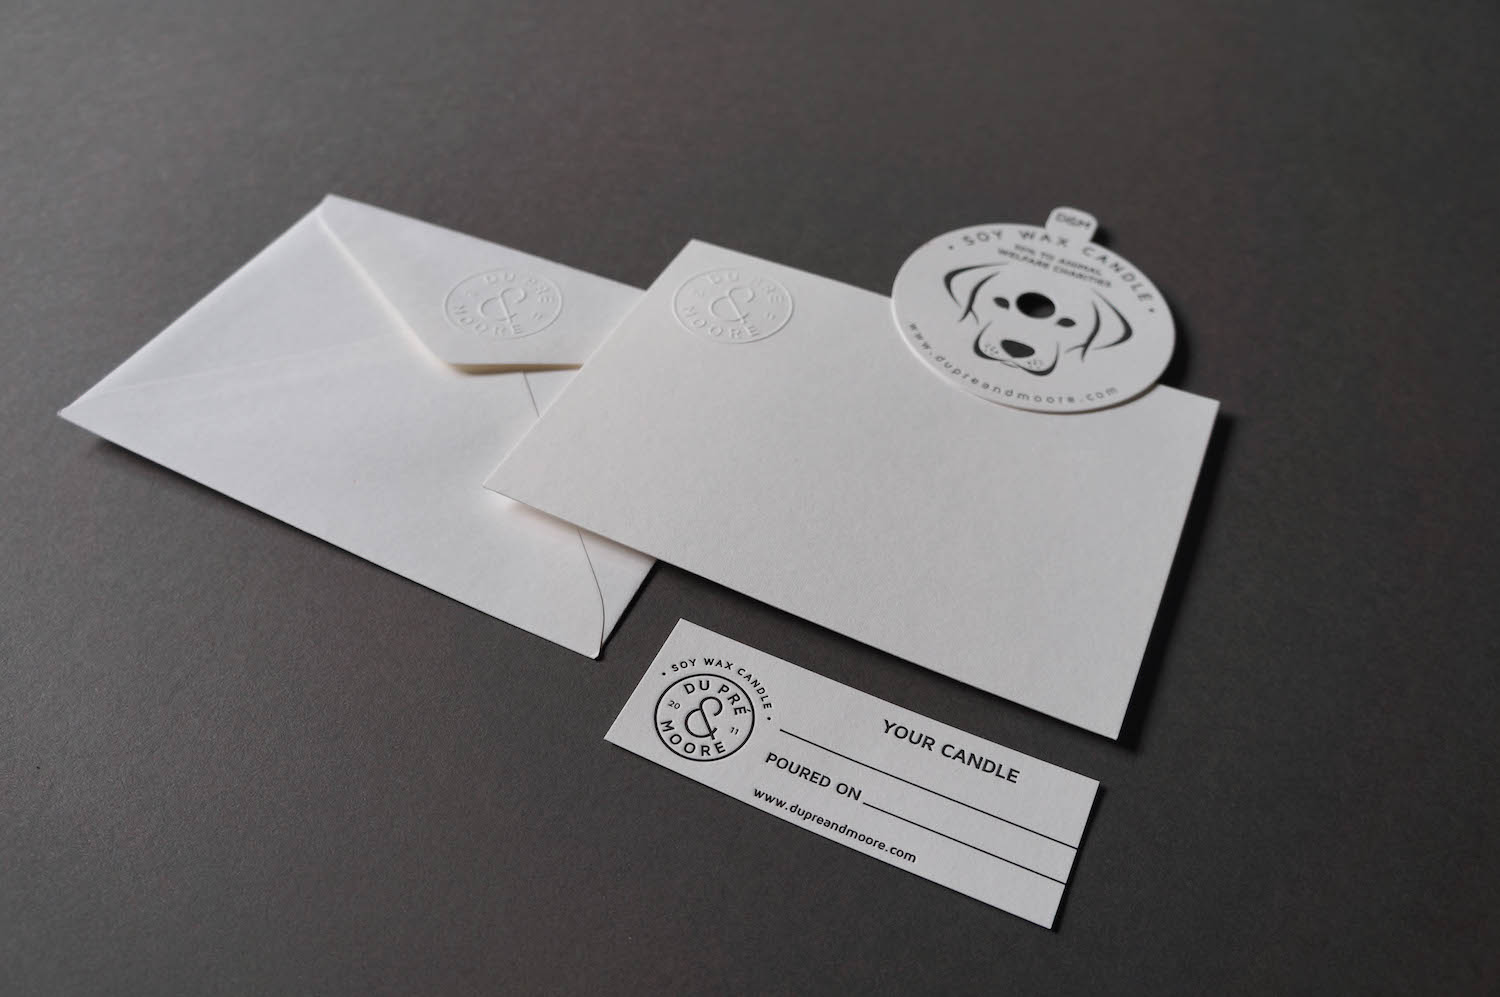 blind-emboss-logo-letterpress-dupremoore-business-collateral-candles-soy-wax